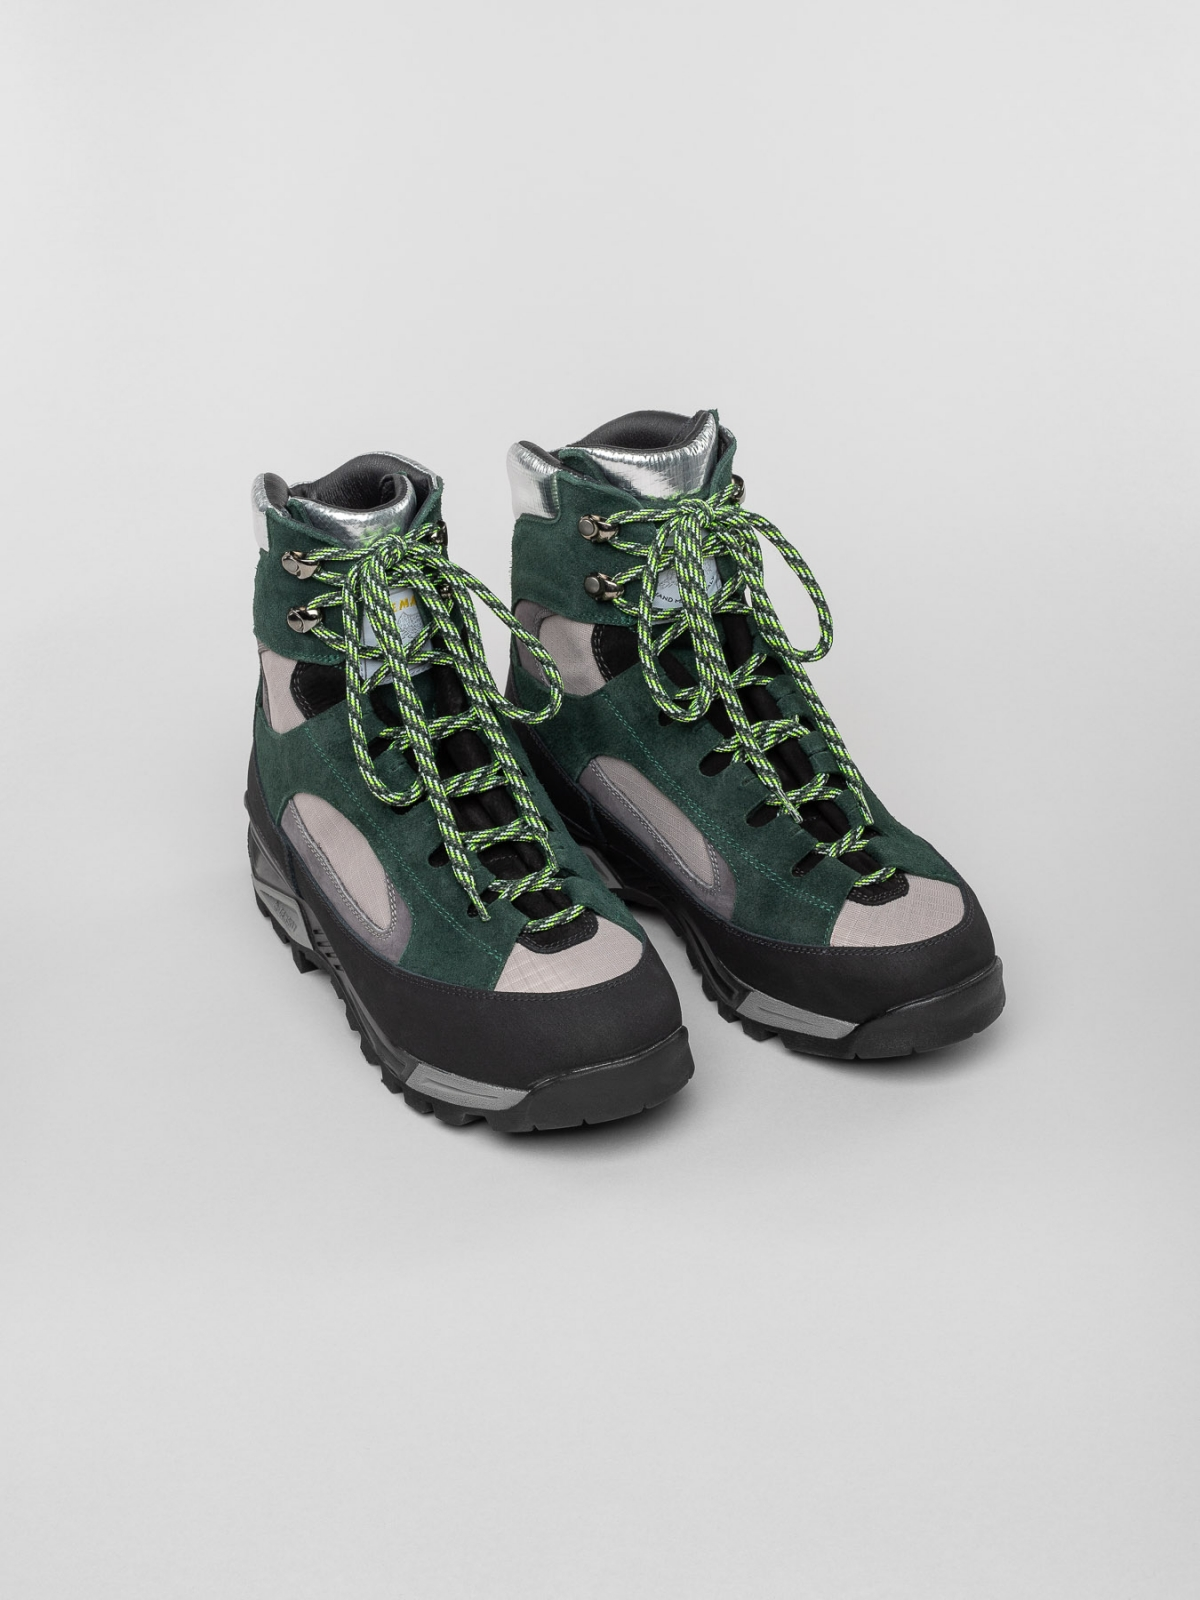 Diemme Civetta Boots in Dark Green